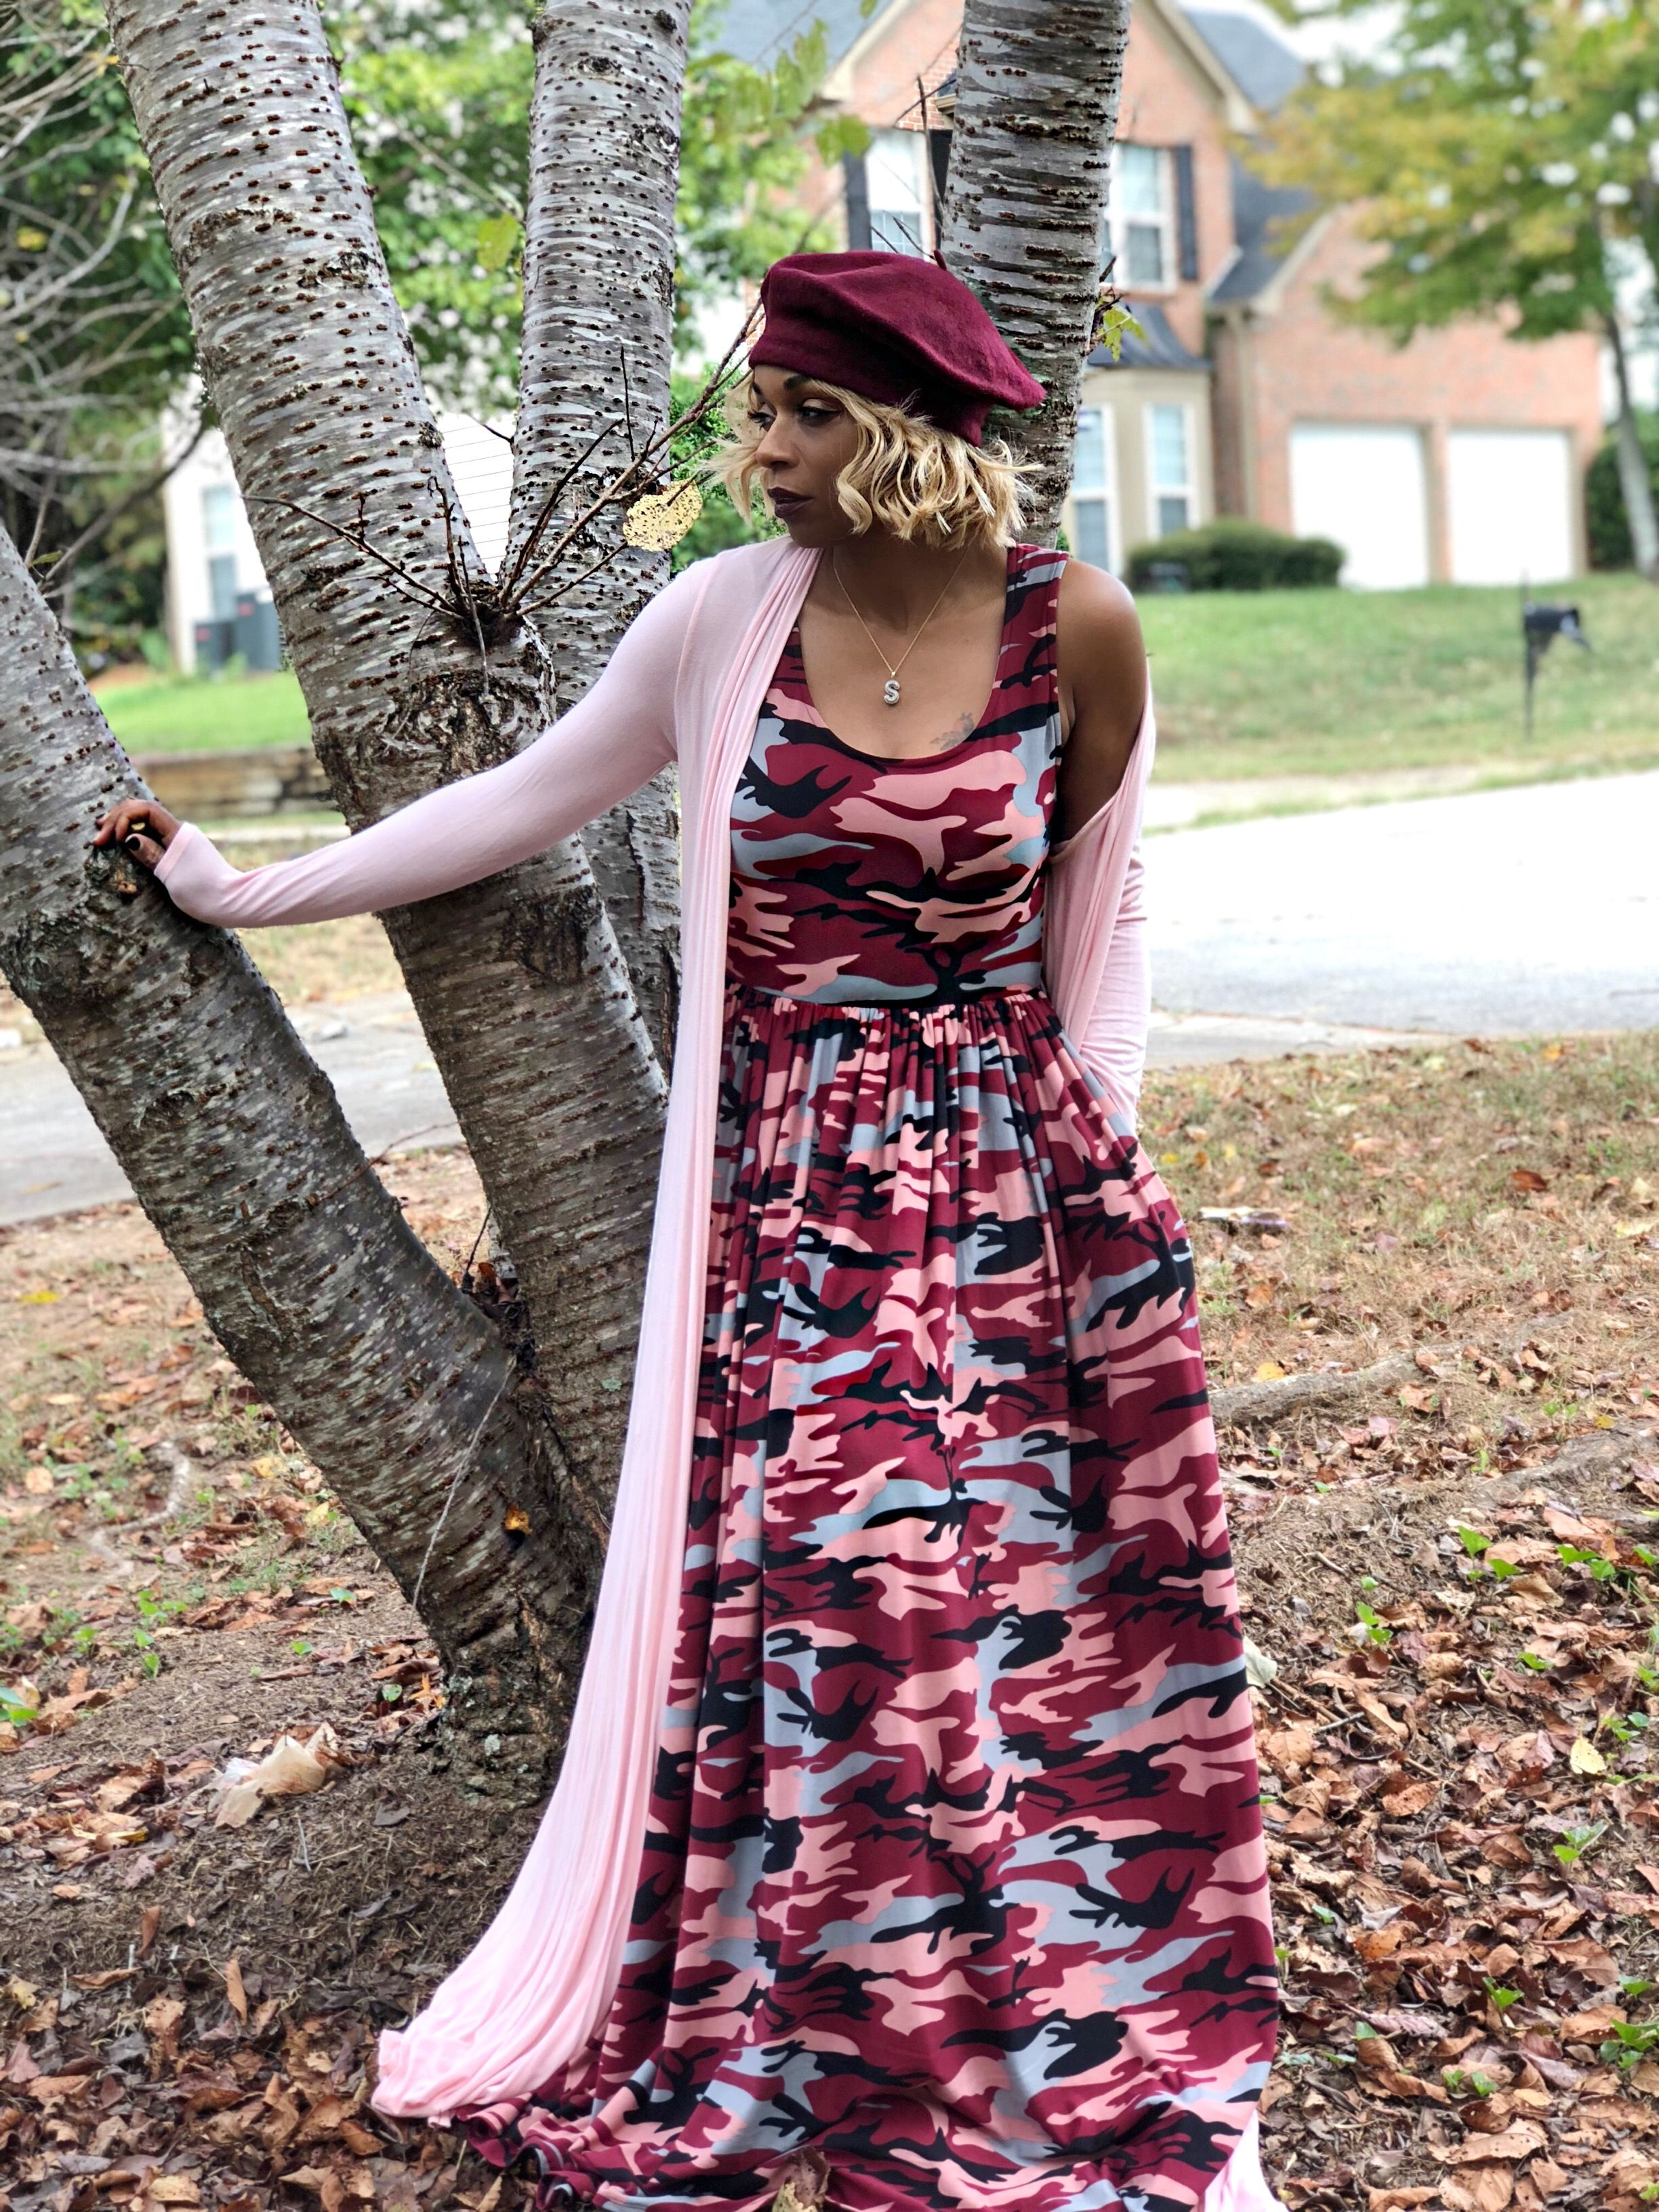 Camo Doesn T Have To Look Tough You Can Soften It Up With Feminine Colors Like Our Burgundy Camo Maxi Dress Fashion Clothes Women Fashion Maxi Dress Outfit [ 3264 x 2448 Pixel ]